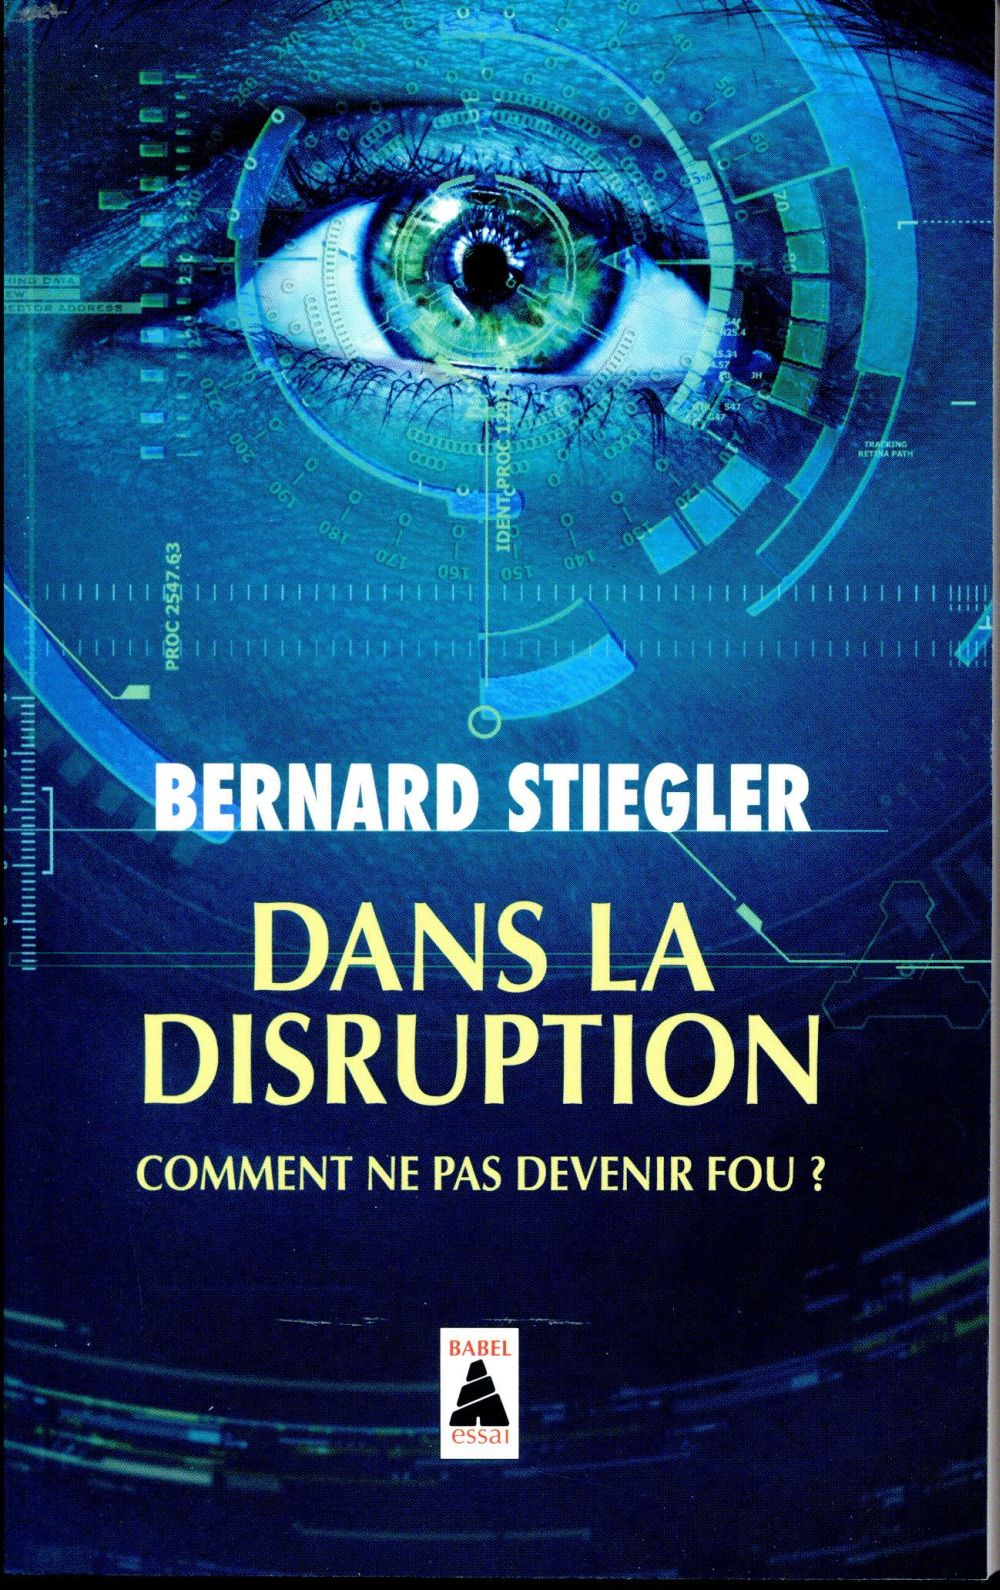 DANS LA DISRUPTION (BABEL) - COMMENT NE PAS DEVENIR FOU?